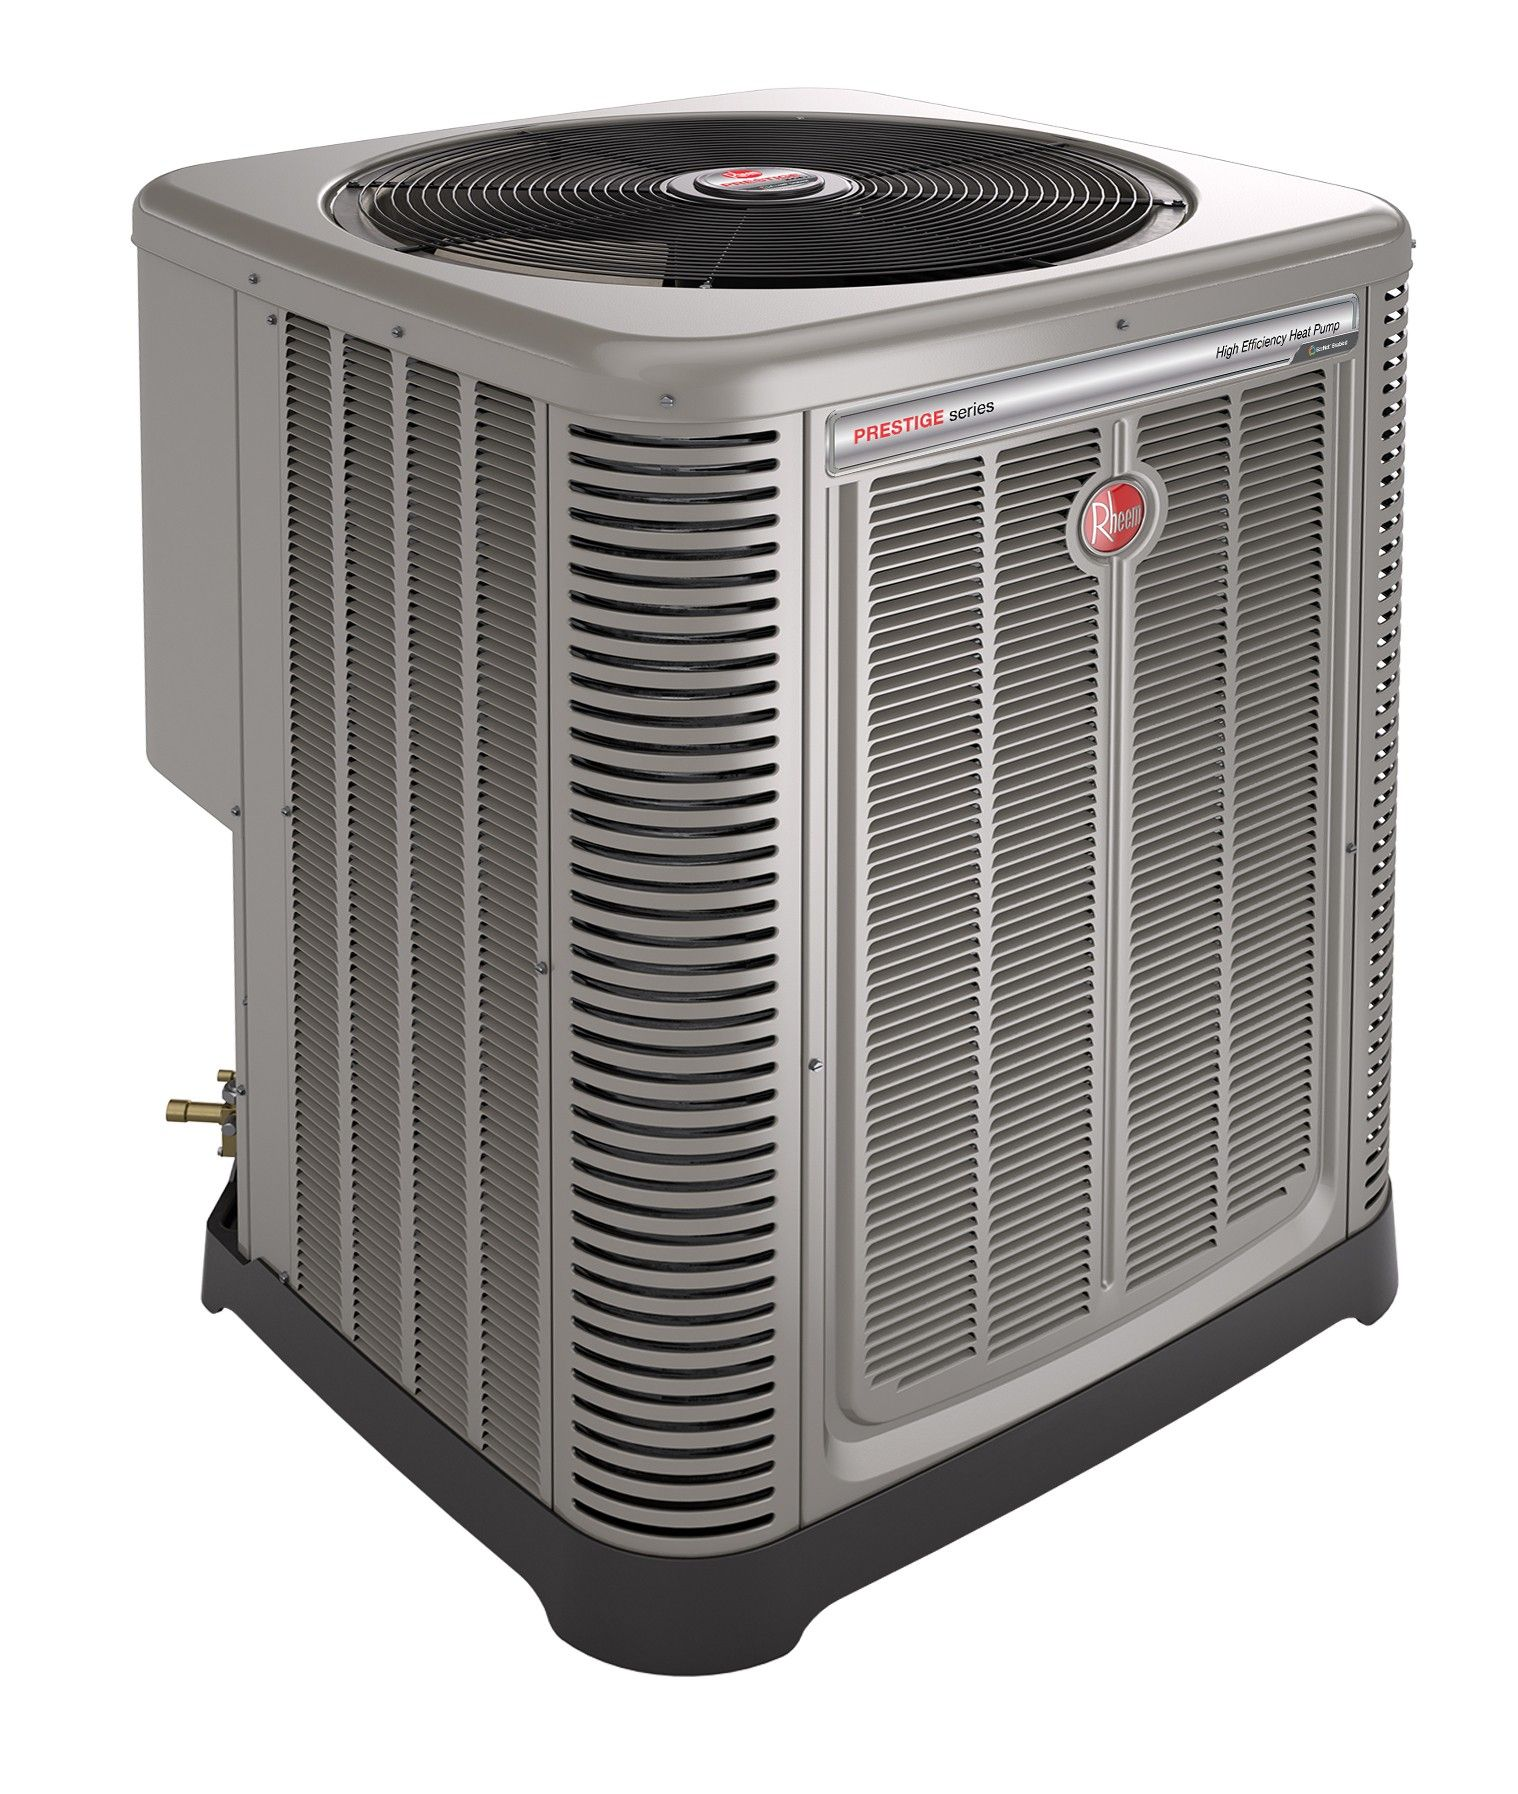 Inspirational Cape Coral Plumbing Air conditioning units